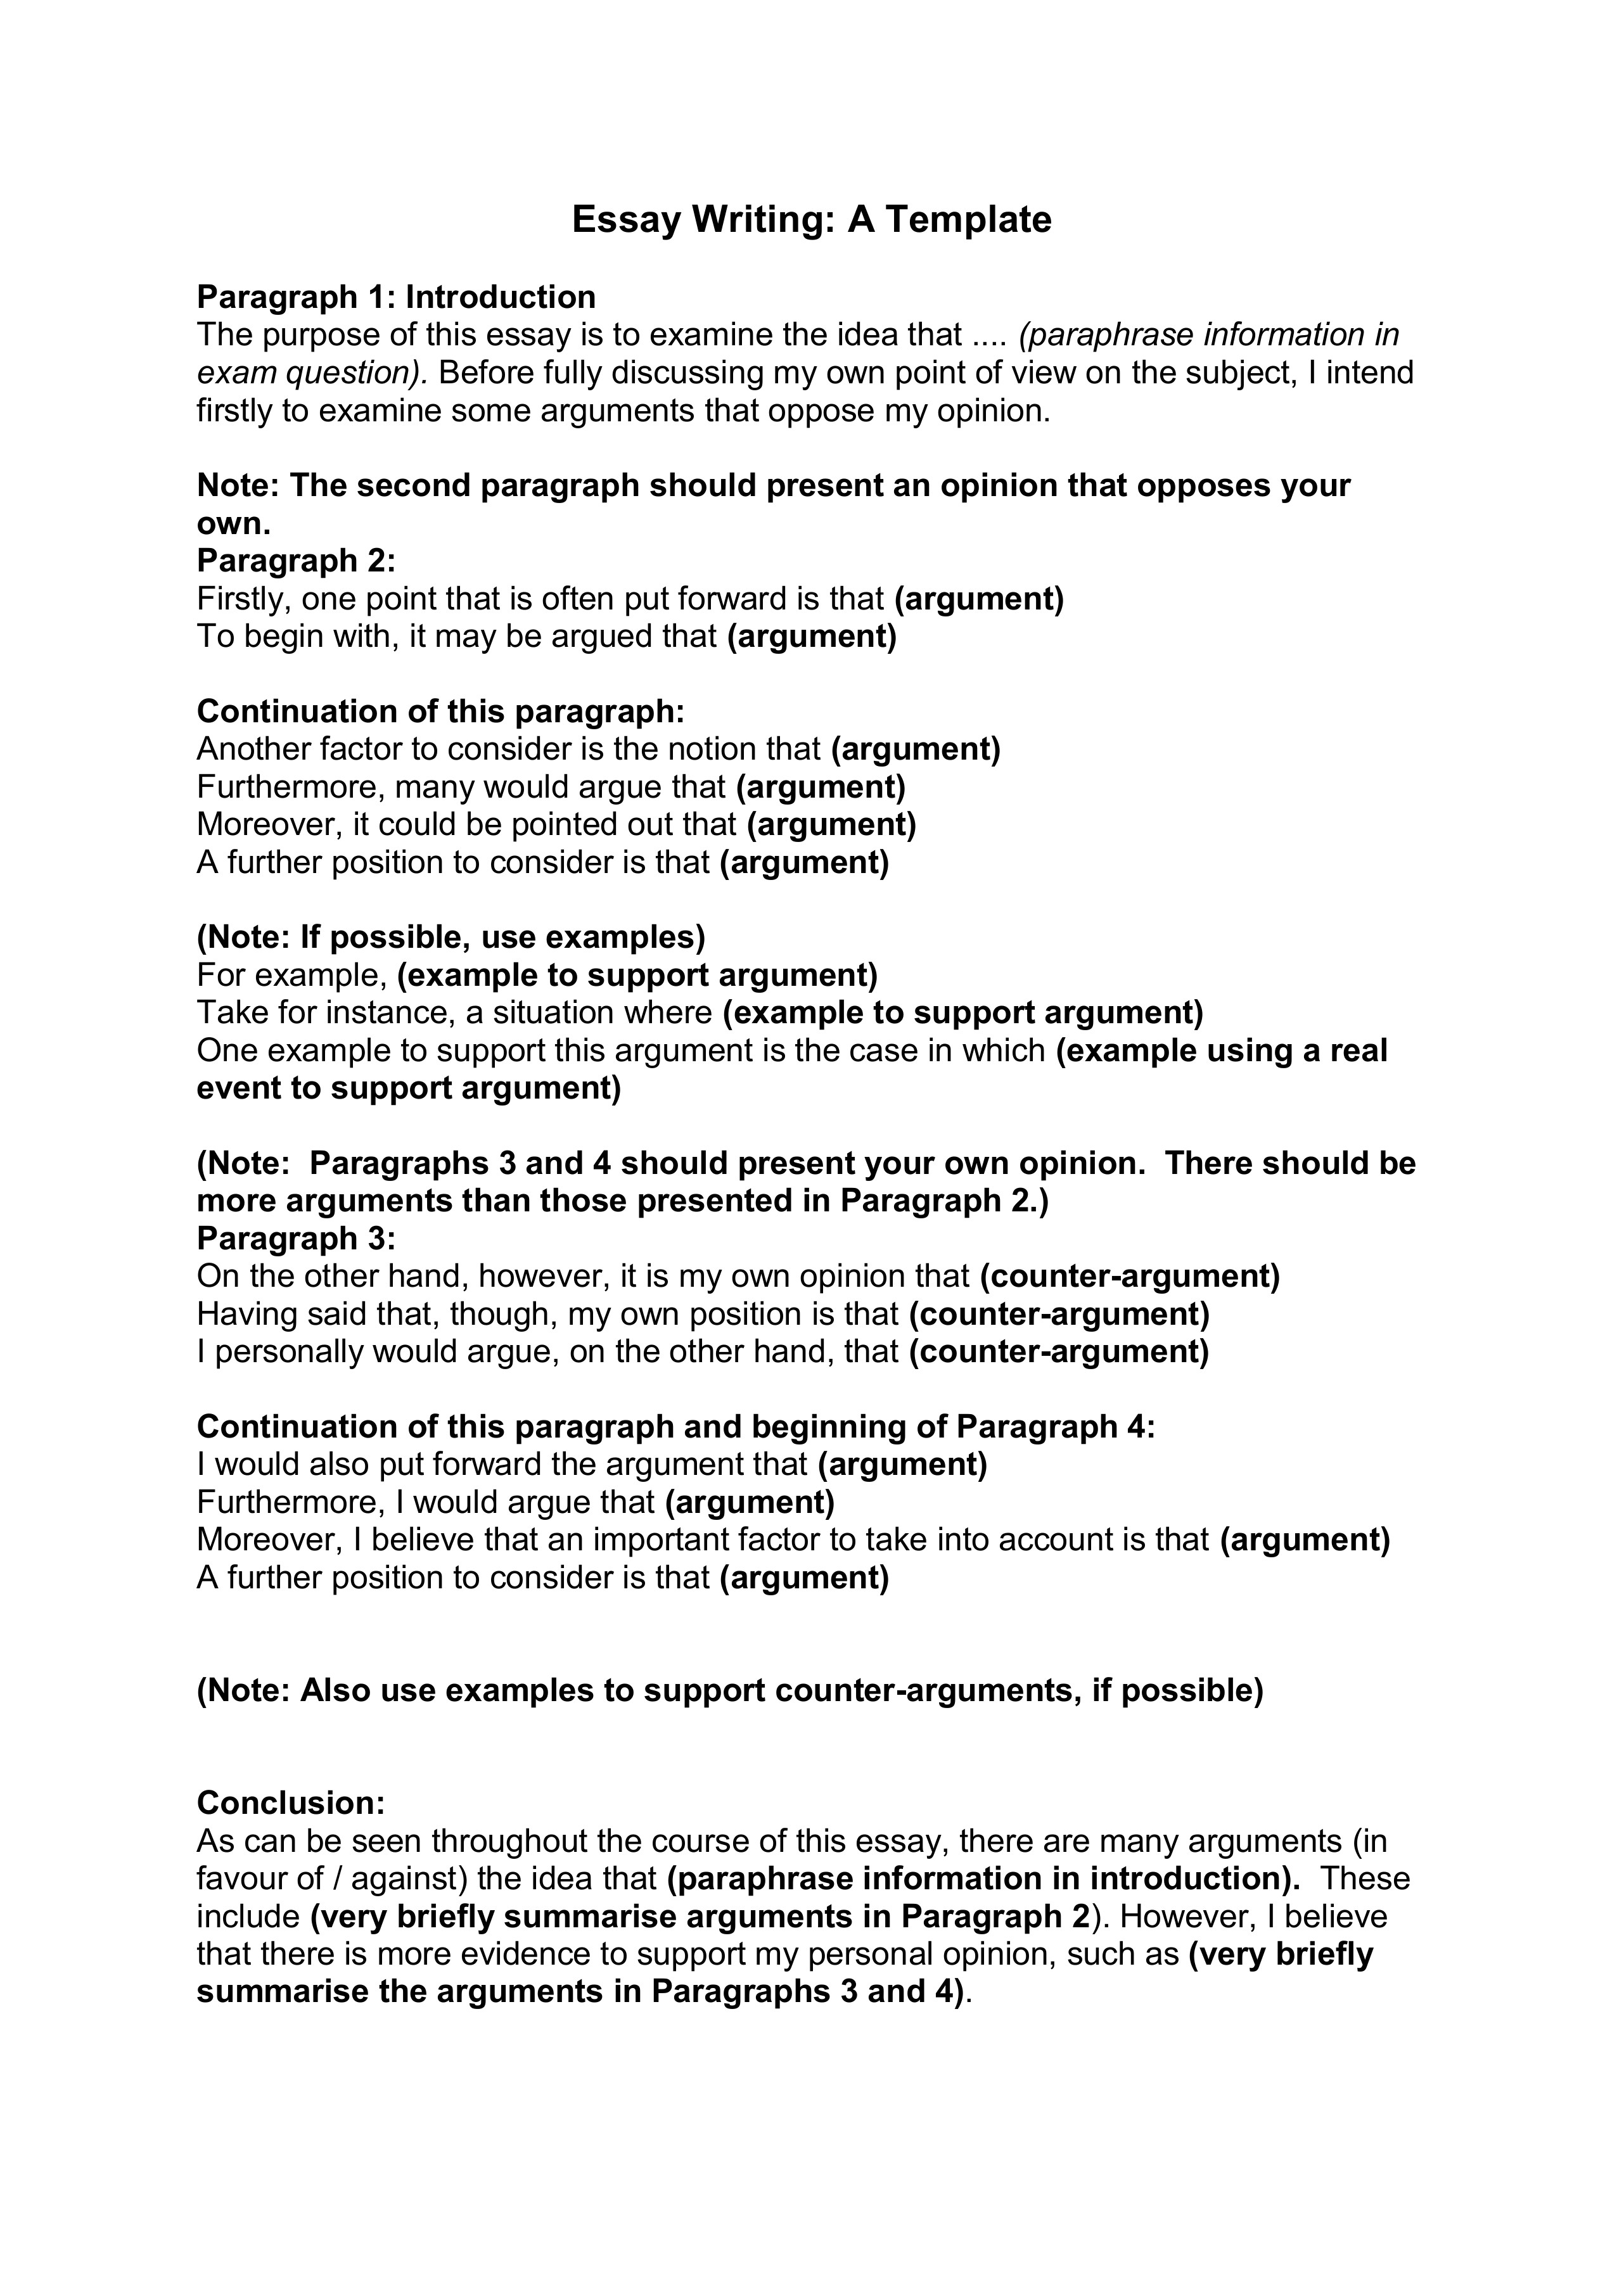 025 Essay Writing Template For Part How Many Sentences Are In Best A Much Make Paragraph An 250 Word Full